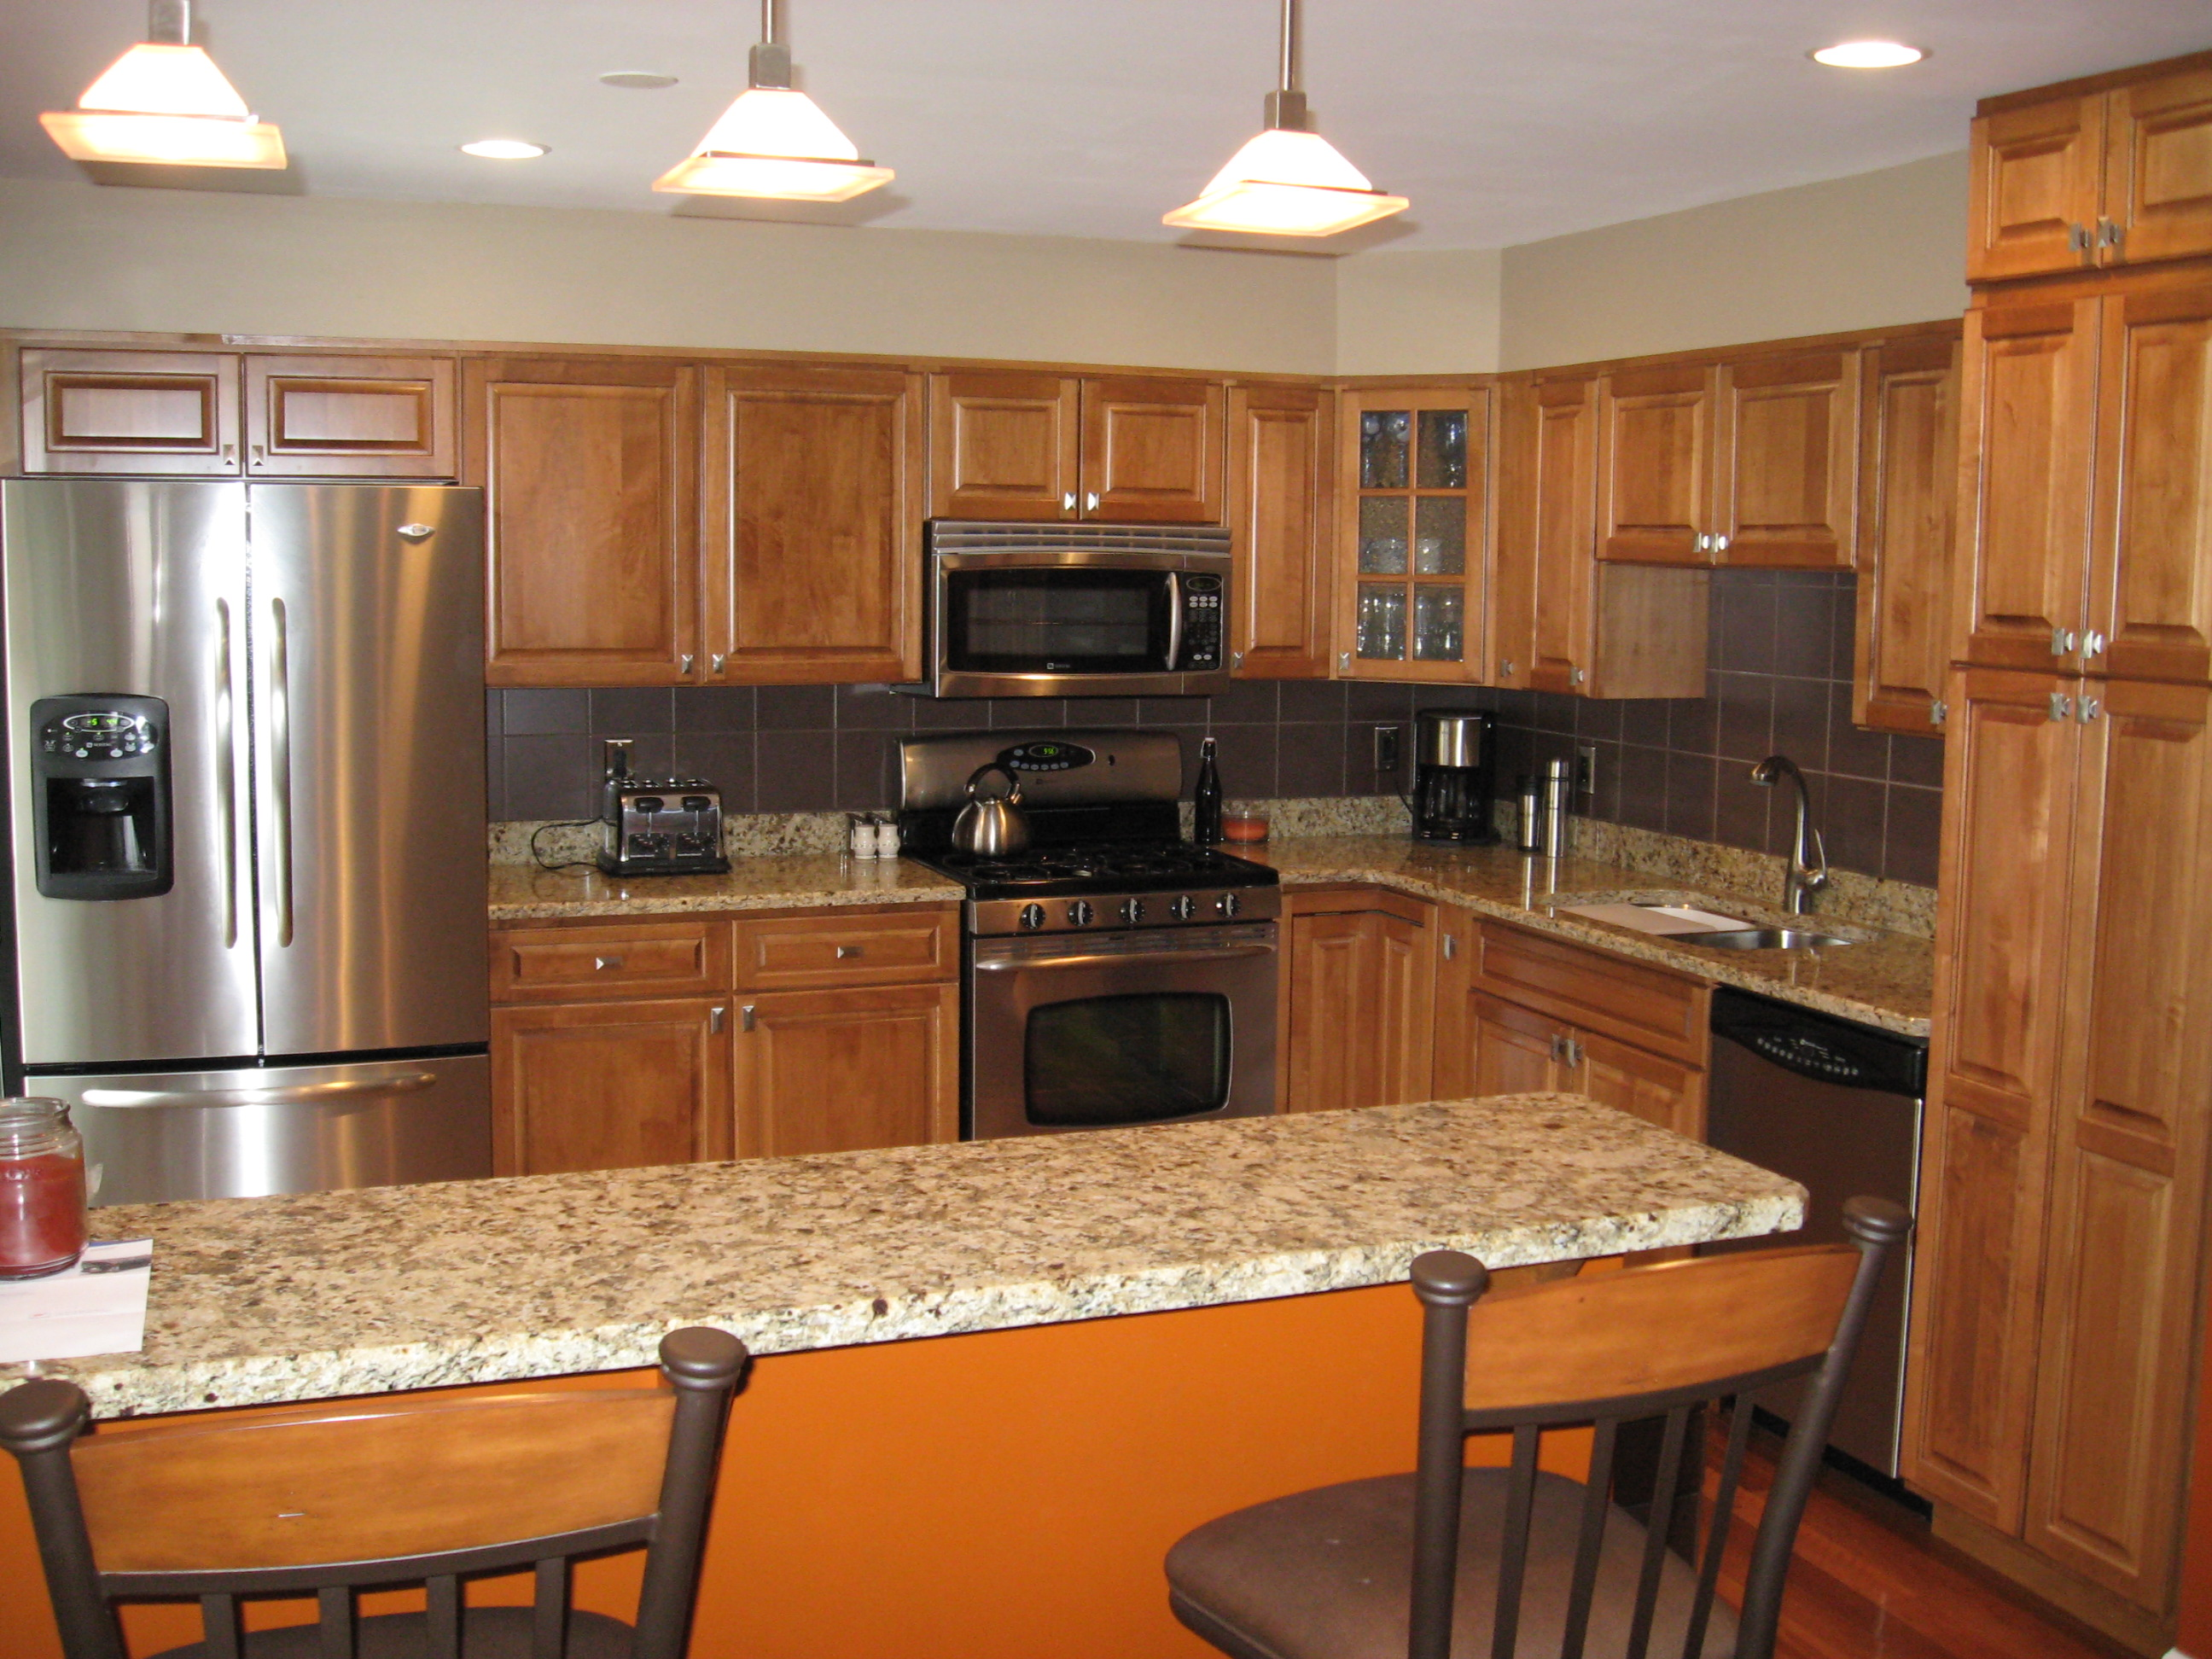 a idea on small kitchen the budget as amazing ideas remodeling